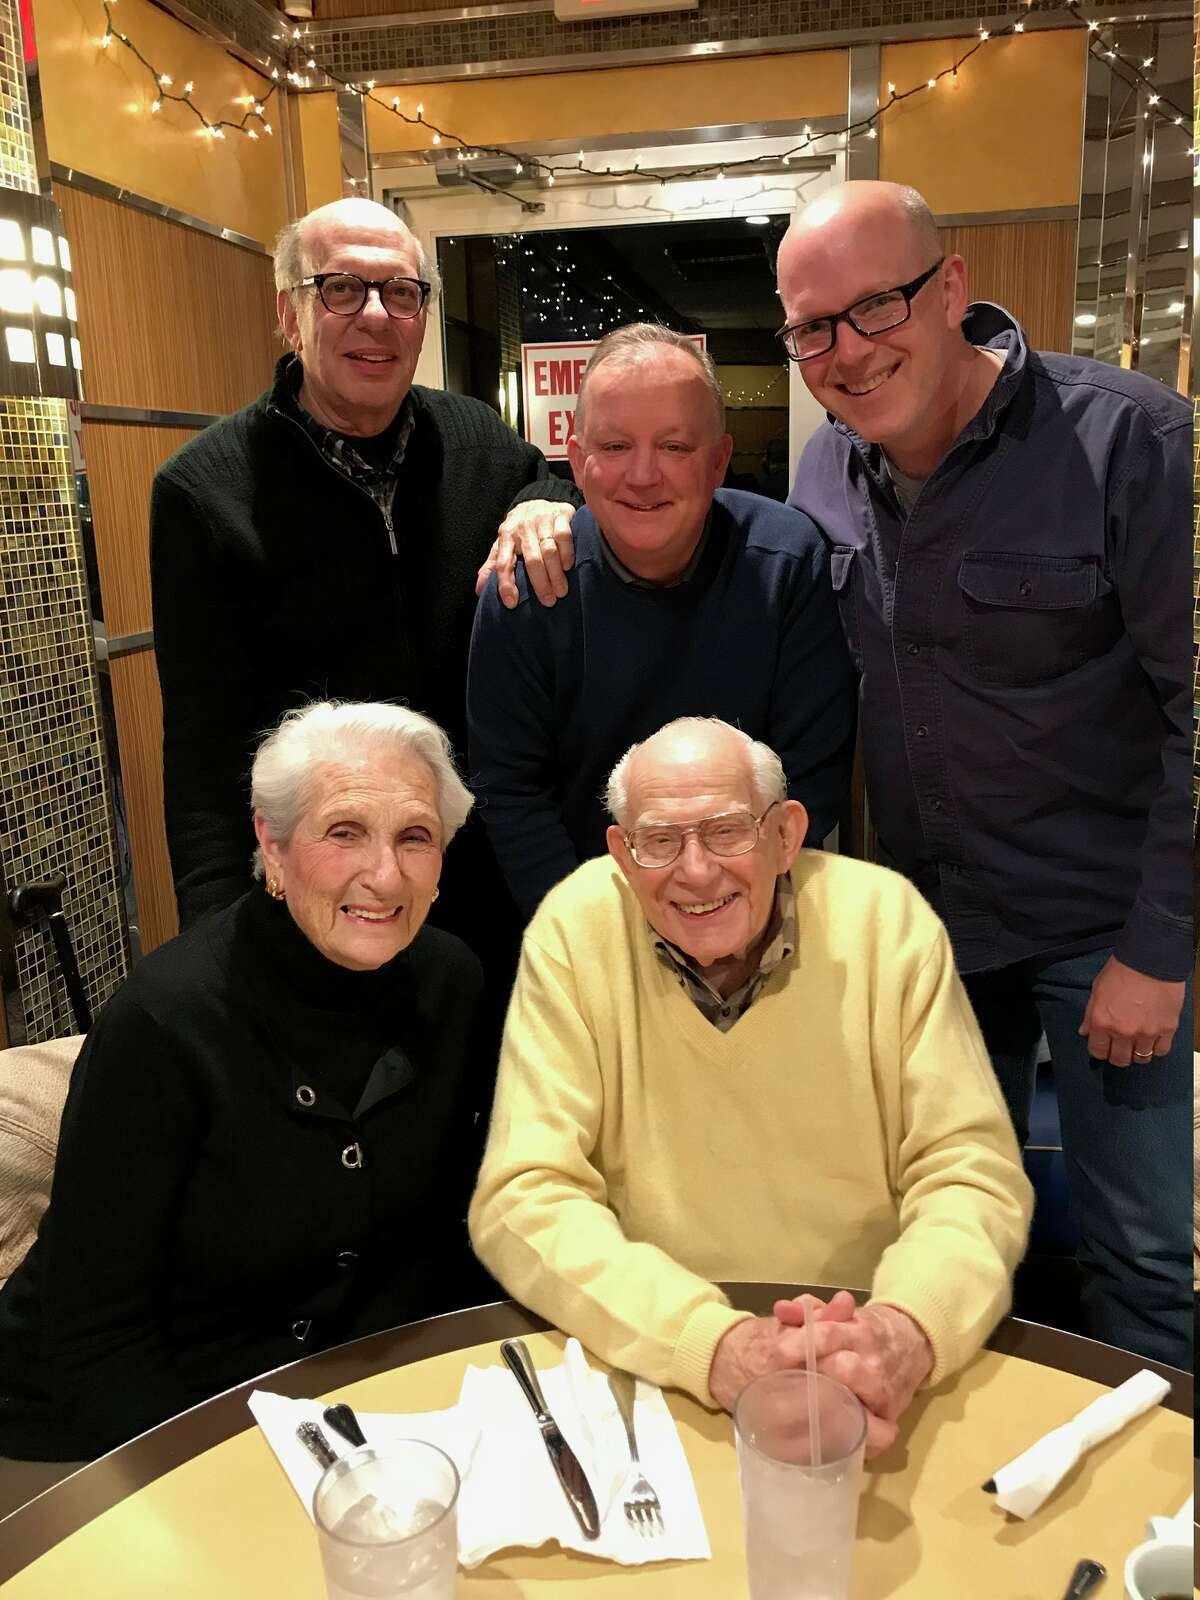 """At the Capital Diner in Guilderland discussing """"The Post"""":Anne and Harry Rosenfeld with (back row from left) Rob Brill, Paul Grondahl and Casey Seiler."""